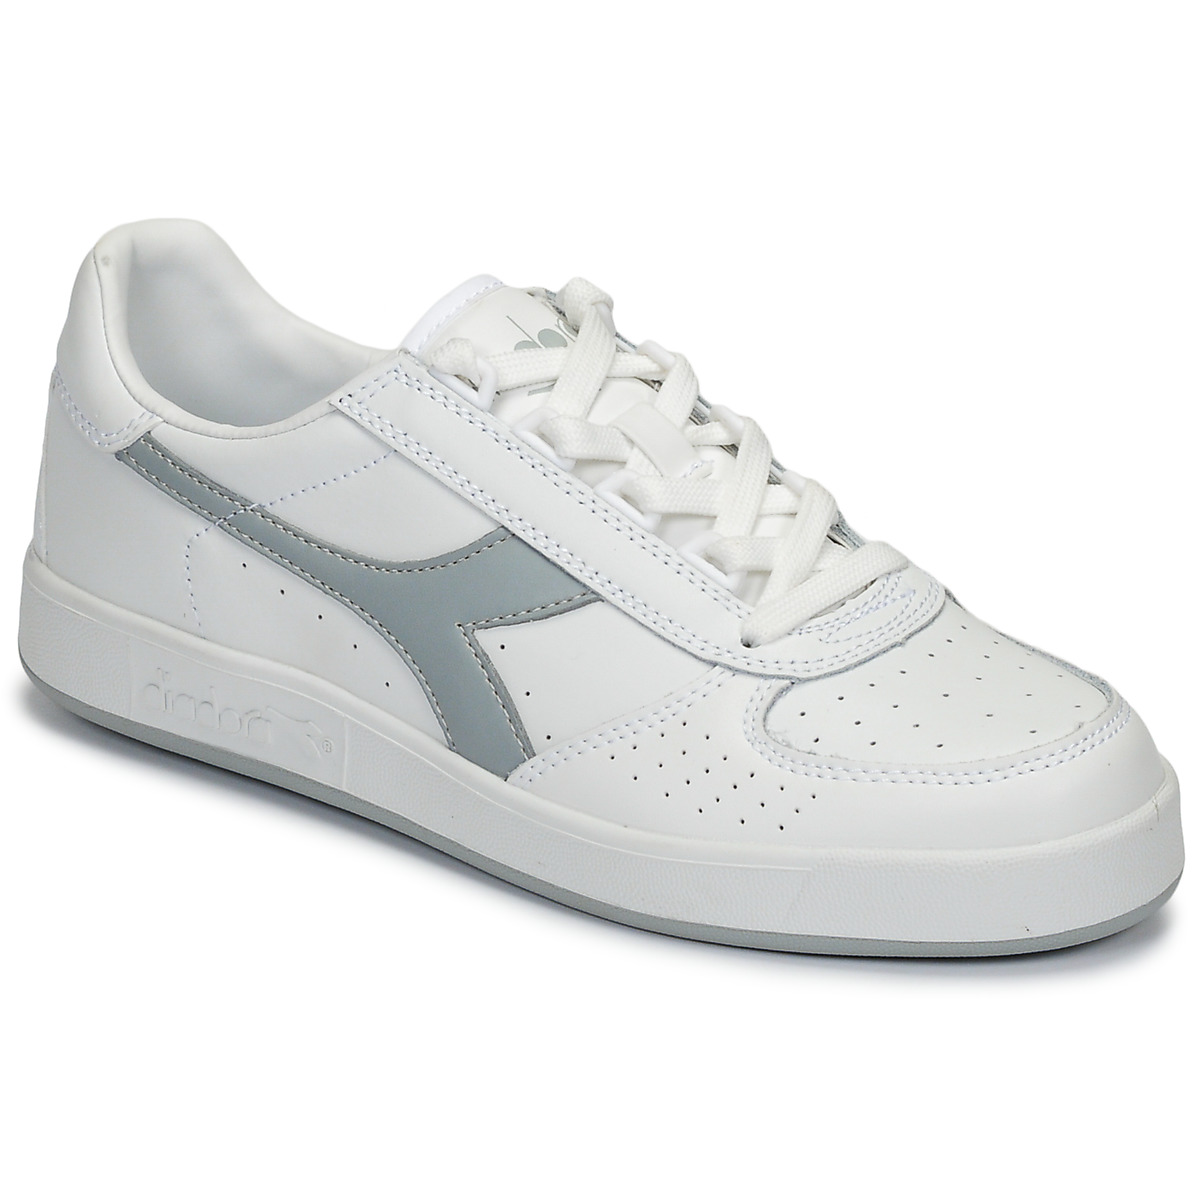 Premise Beautiful woman Repel  Diadora B ELITE White / Grey - Fast delivery | Spartoo Europe ! - Shoes Low  top trainers 64,00 €